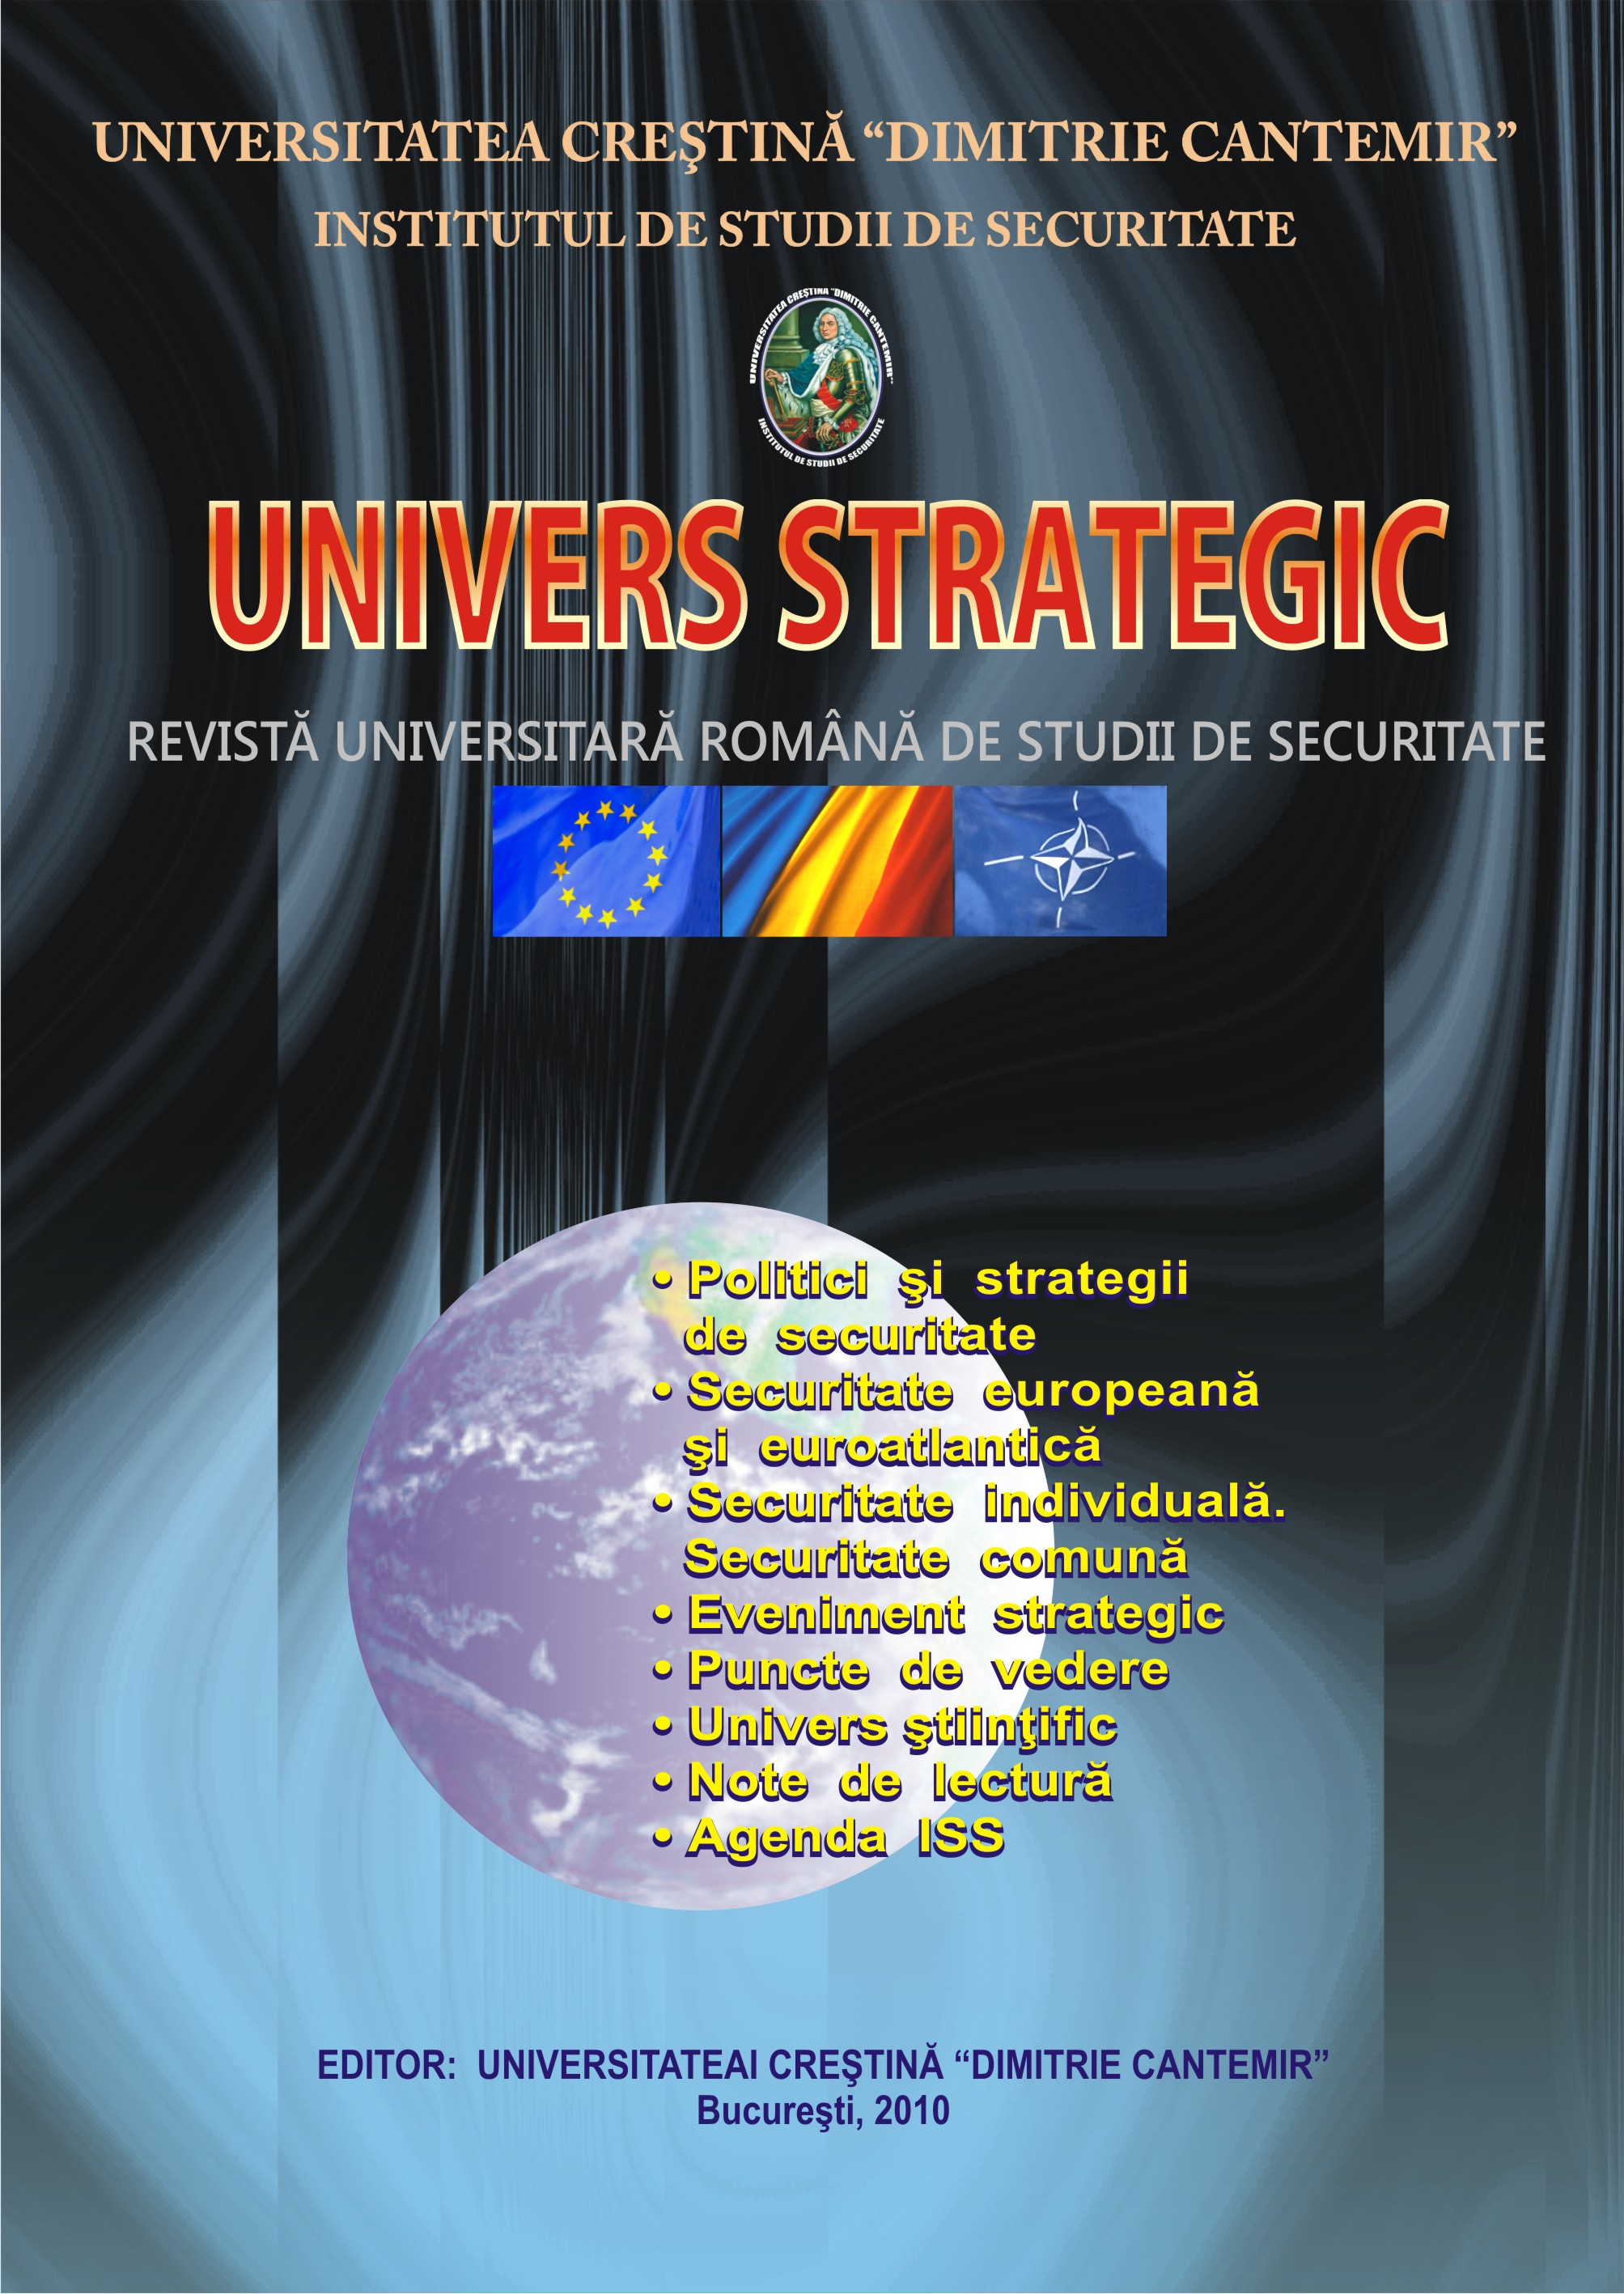 The Strategic Universe Journal Cover Image